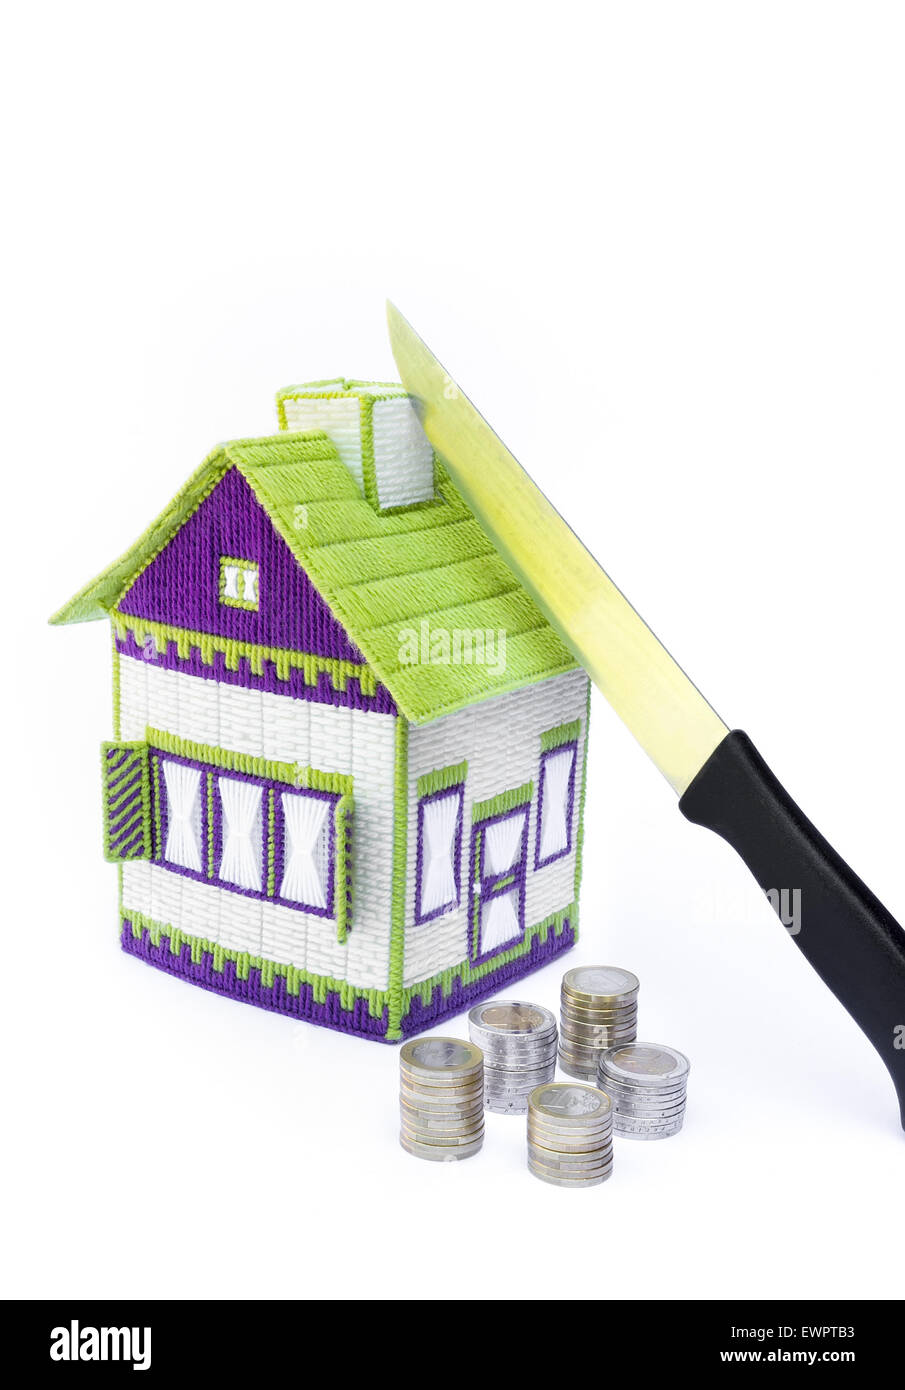 How to Buy a House when Bankrupt How to Buy a House when Bankrupt new photo